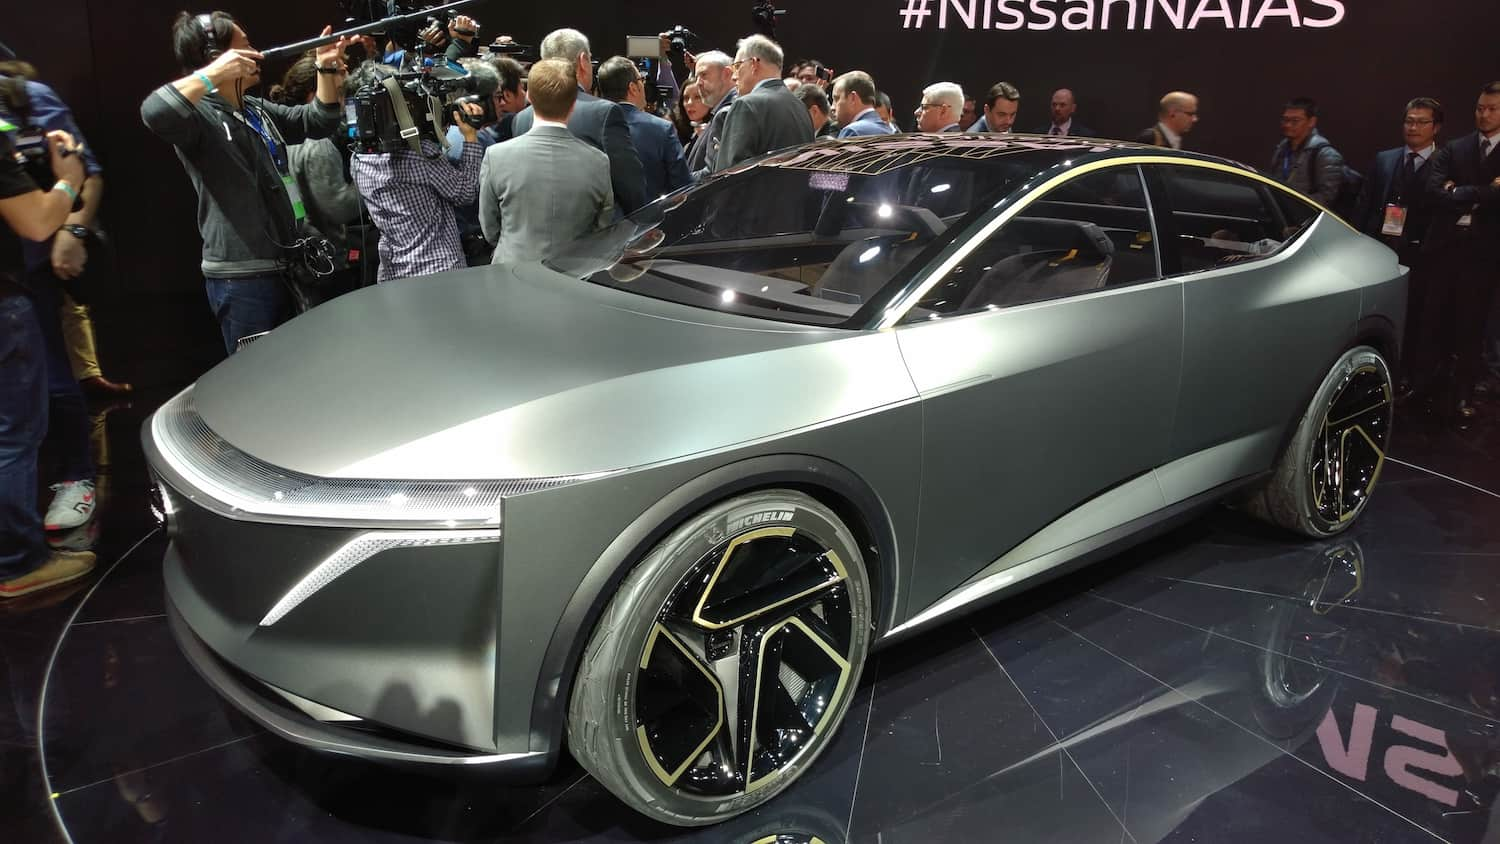 The Nissan Ims Electric Vehicle Concept Drew Raves From Those In Attendance At Detroit Auto Show But It Is Only One Of Several